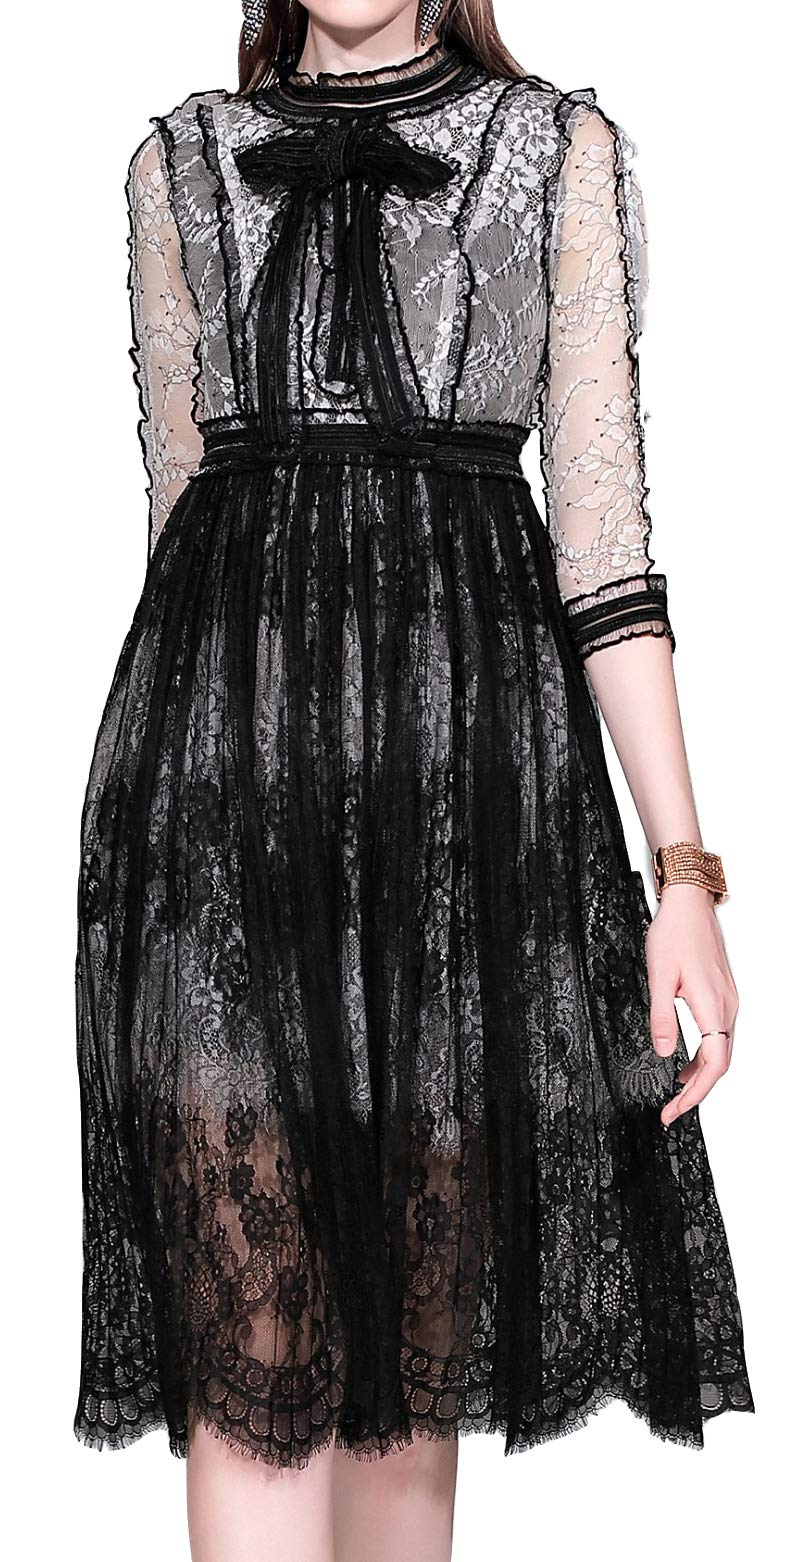 Women's 3/4 Sleeve Lace Elegant Cocktail Dress Crew Neck Knee Length for Party